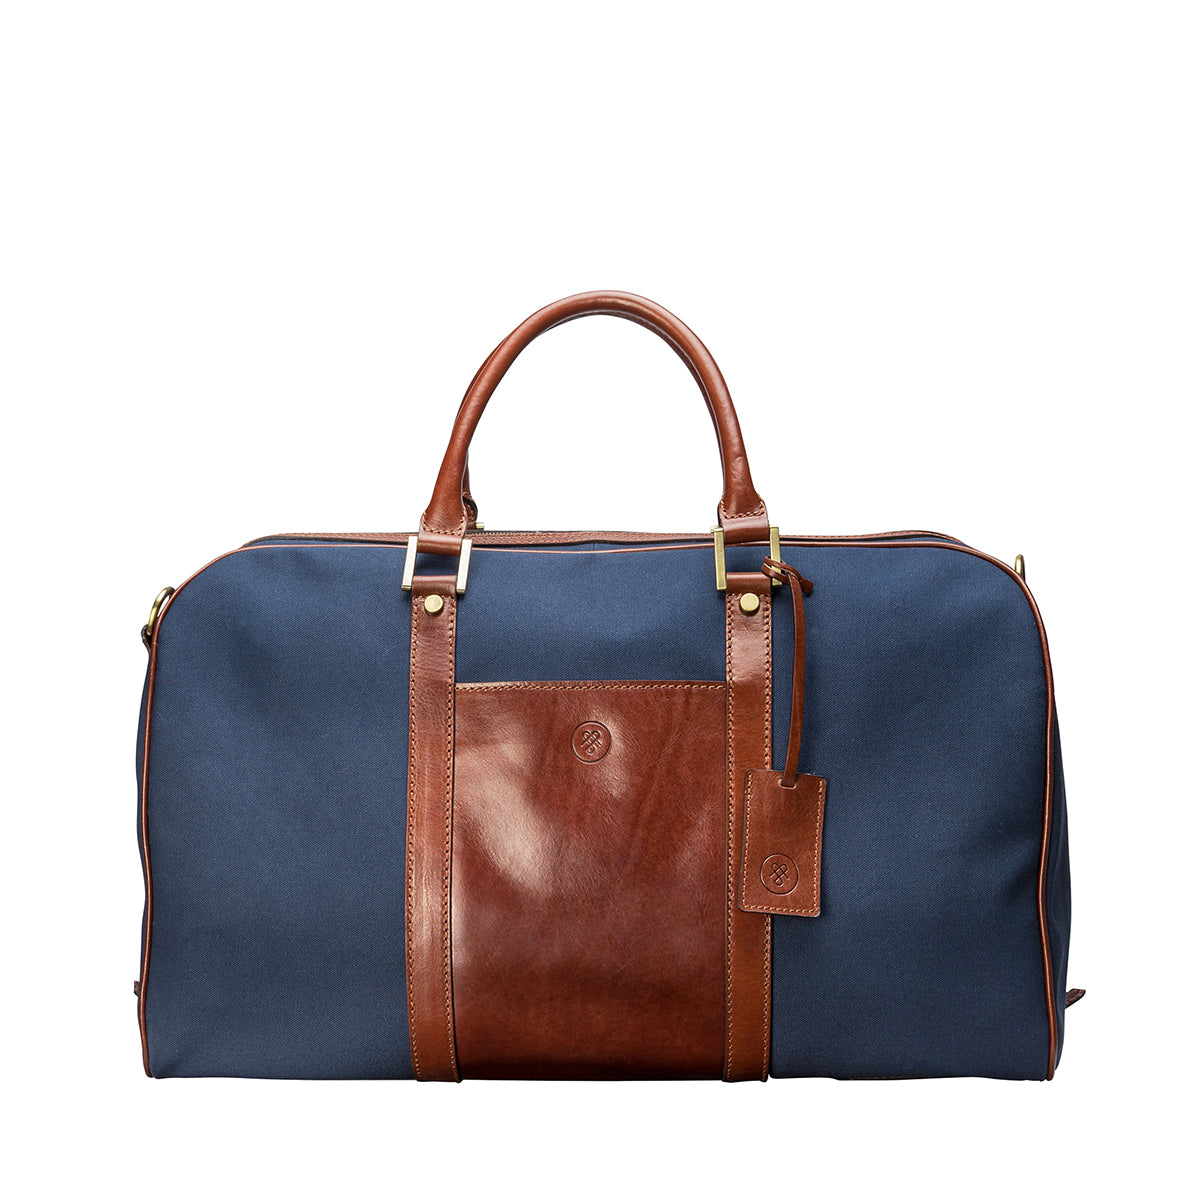 Image 1 of the 'Giovane' Rich Navy and Tan Holdall